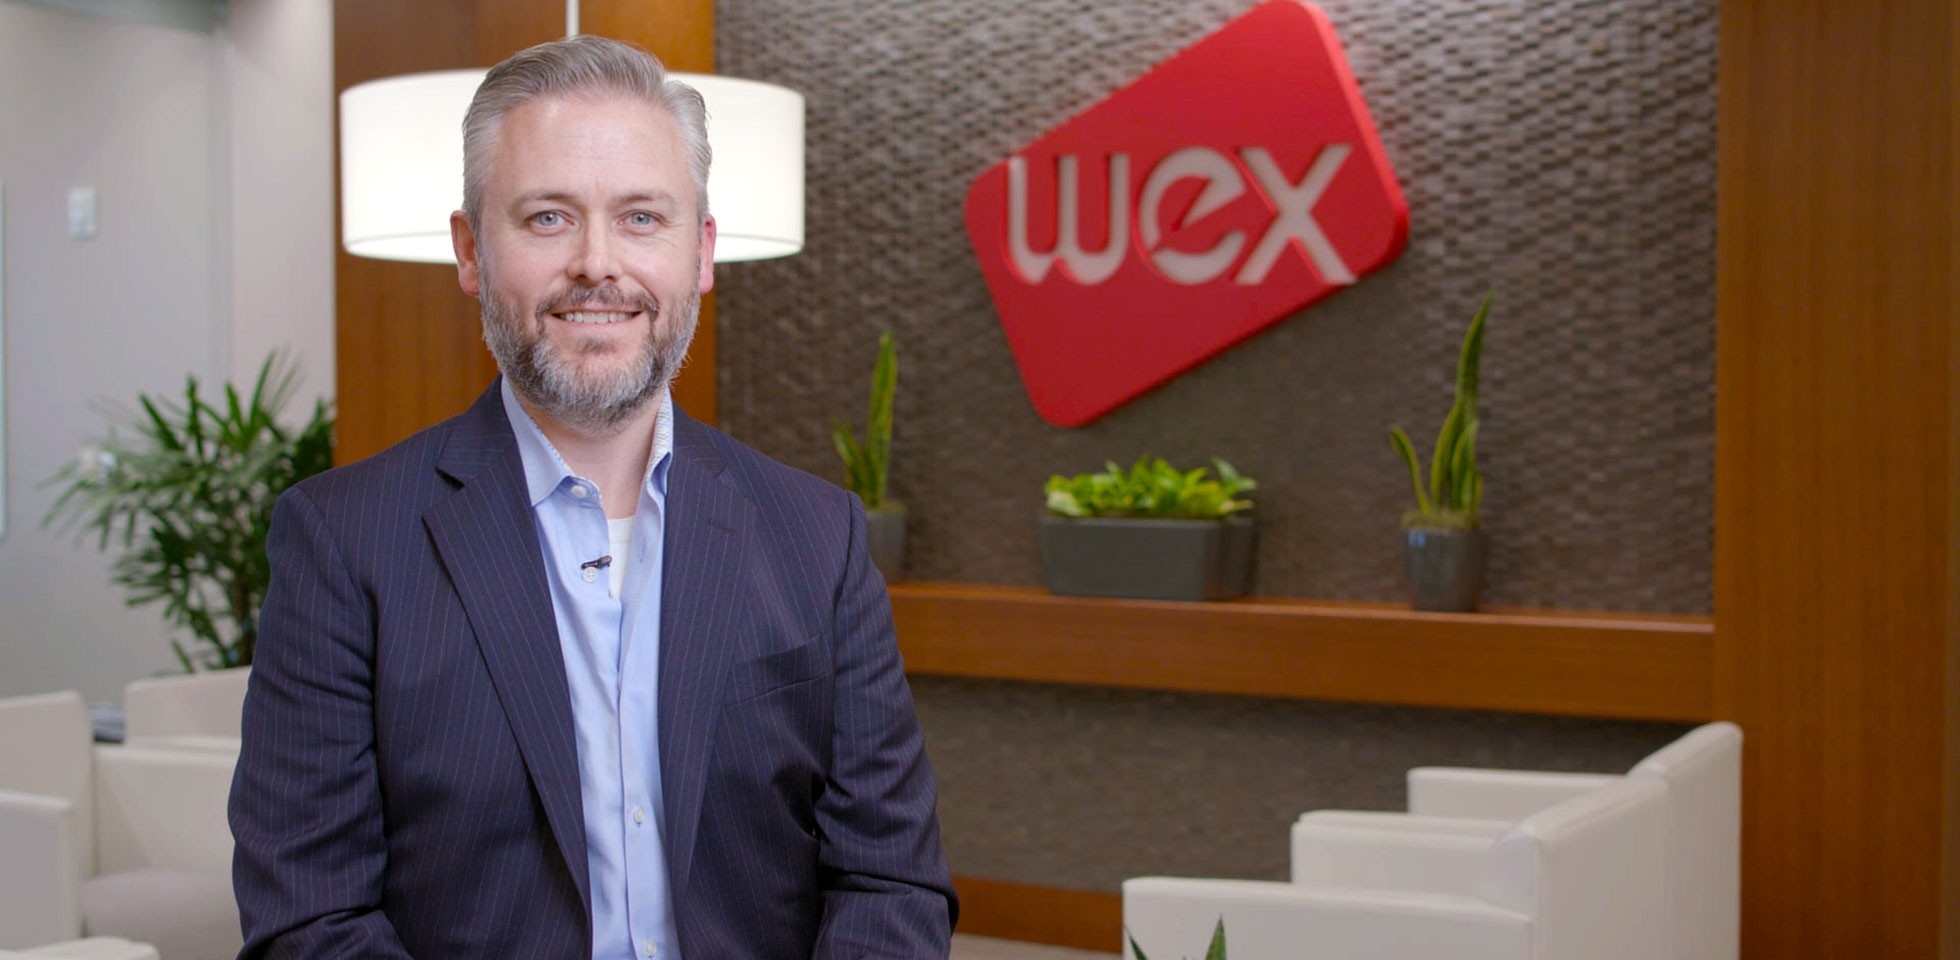 Aldon Cheatham, Implementation Manager - WEX Careers